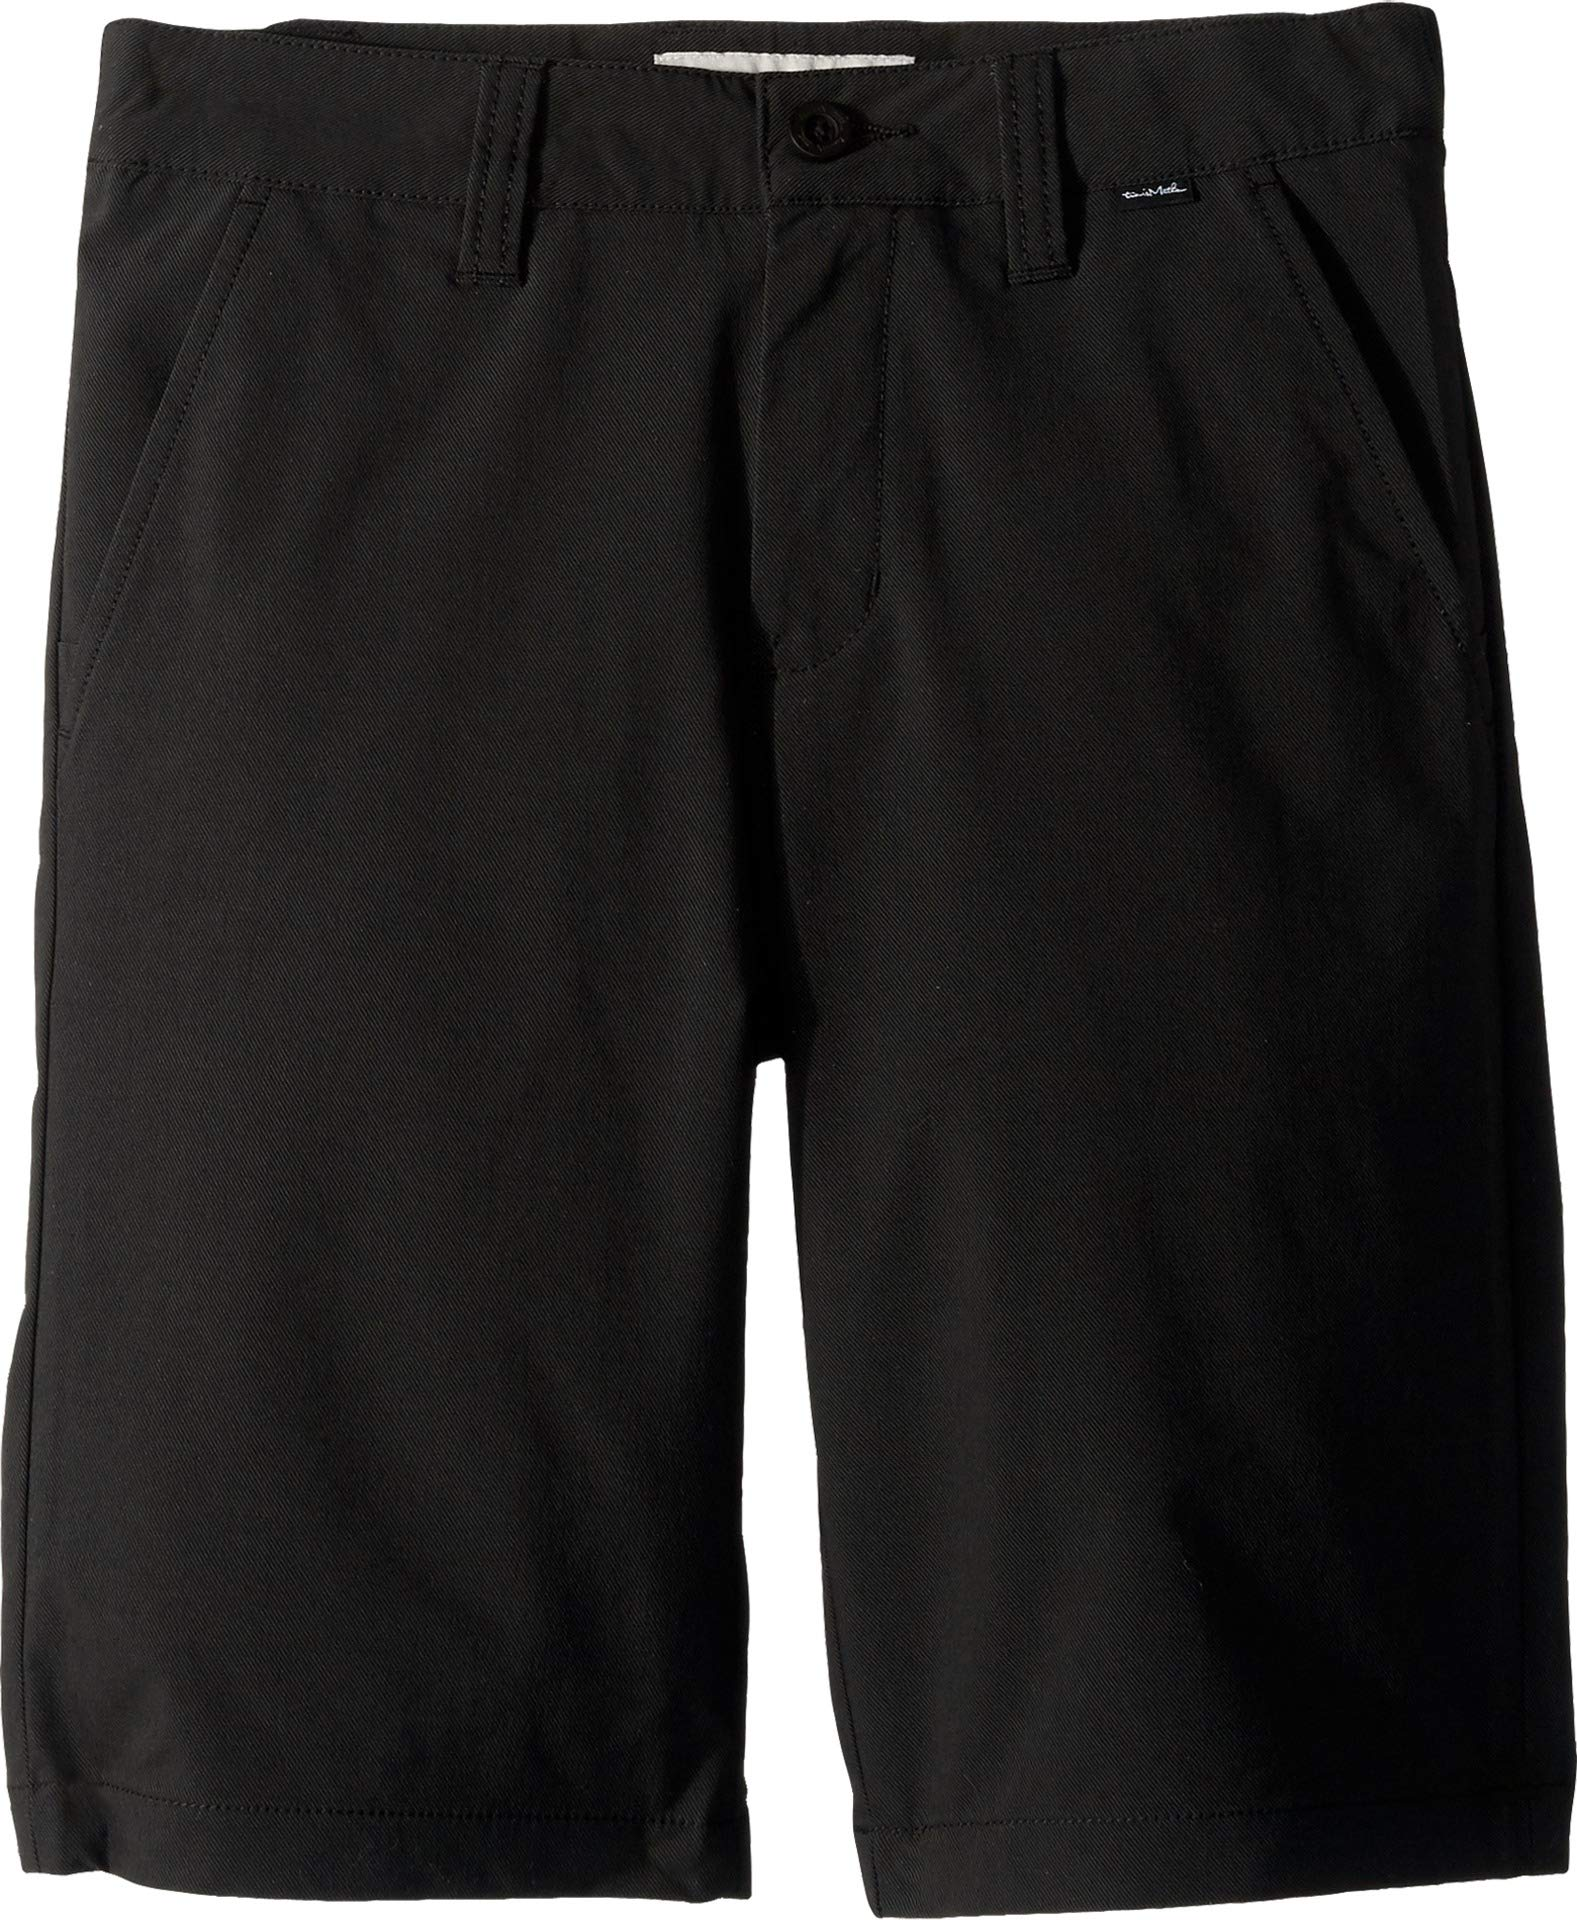 TravisMathew Boys J-Hef Flex Golf Shorts, Black, Large